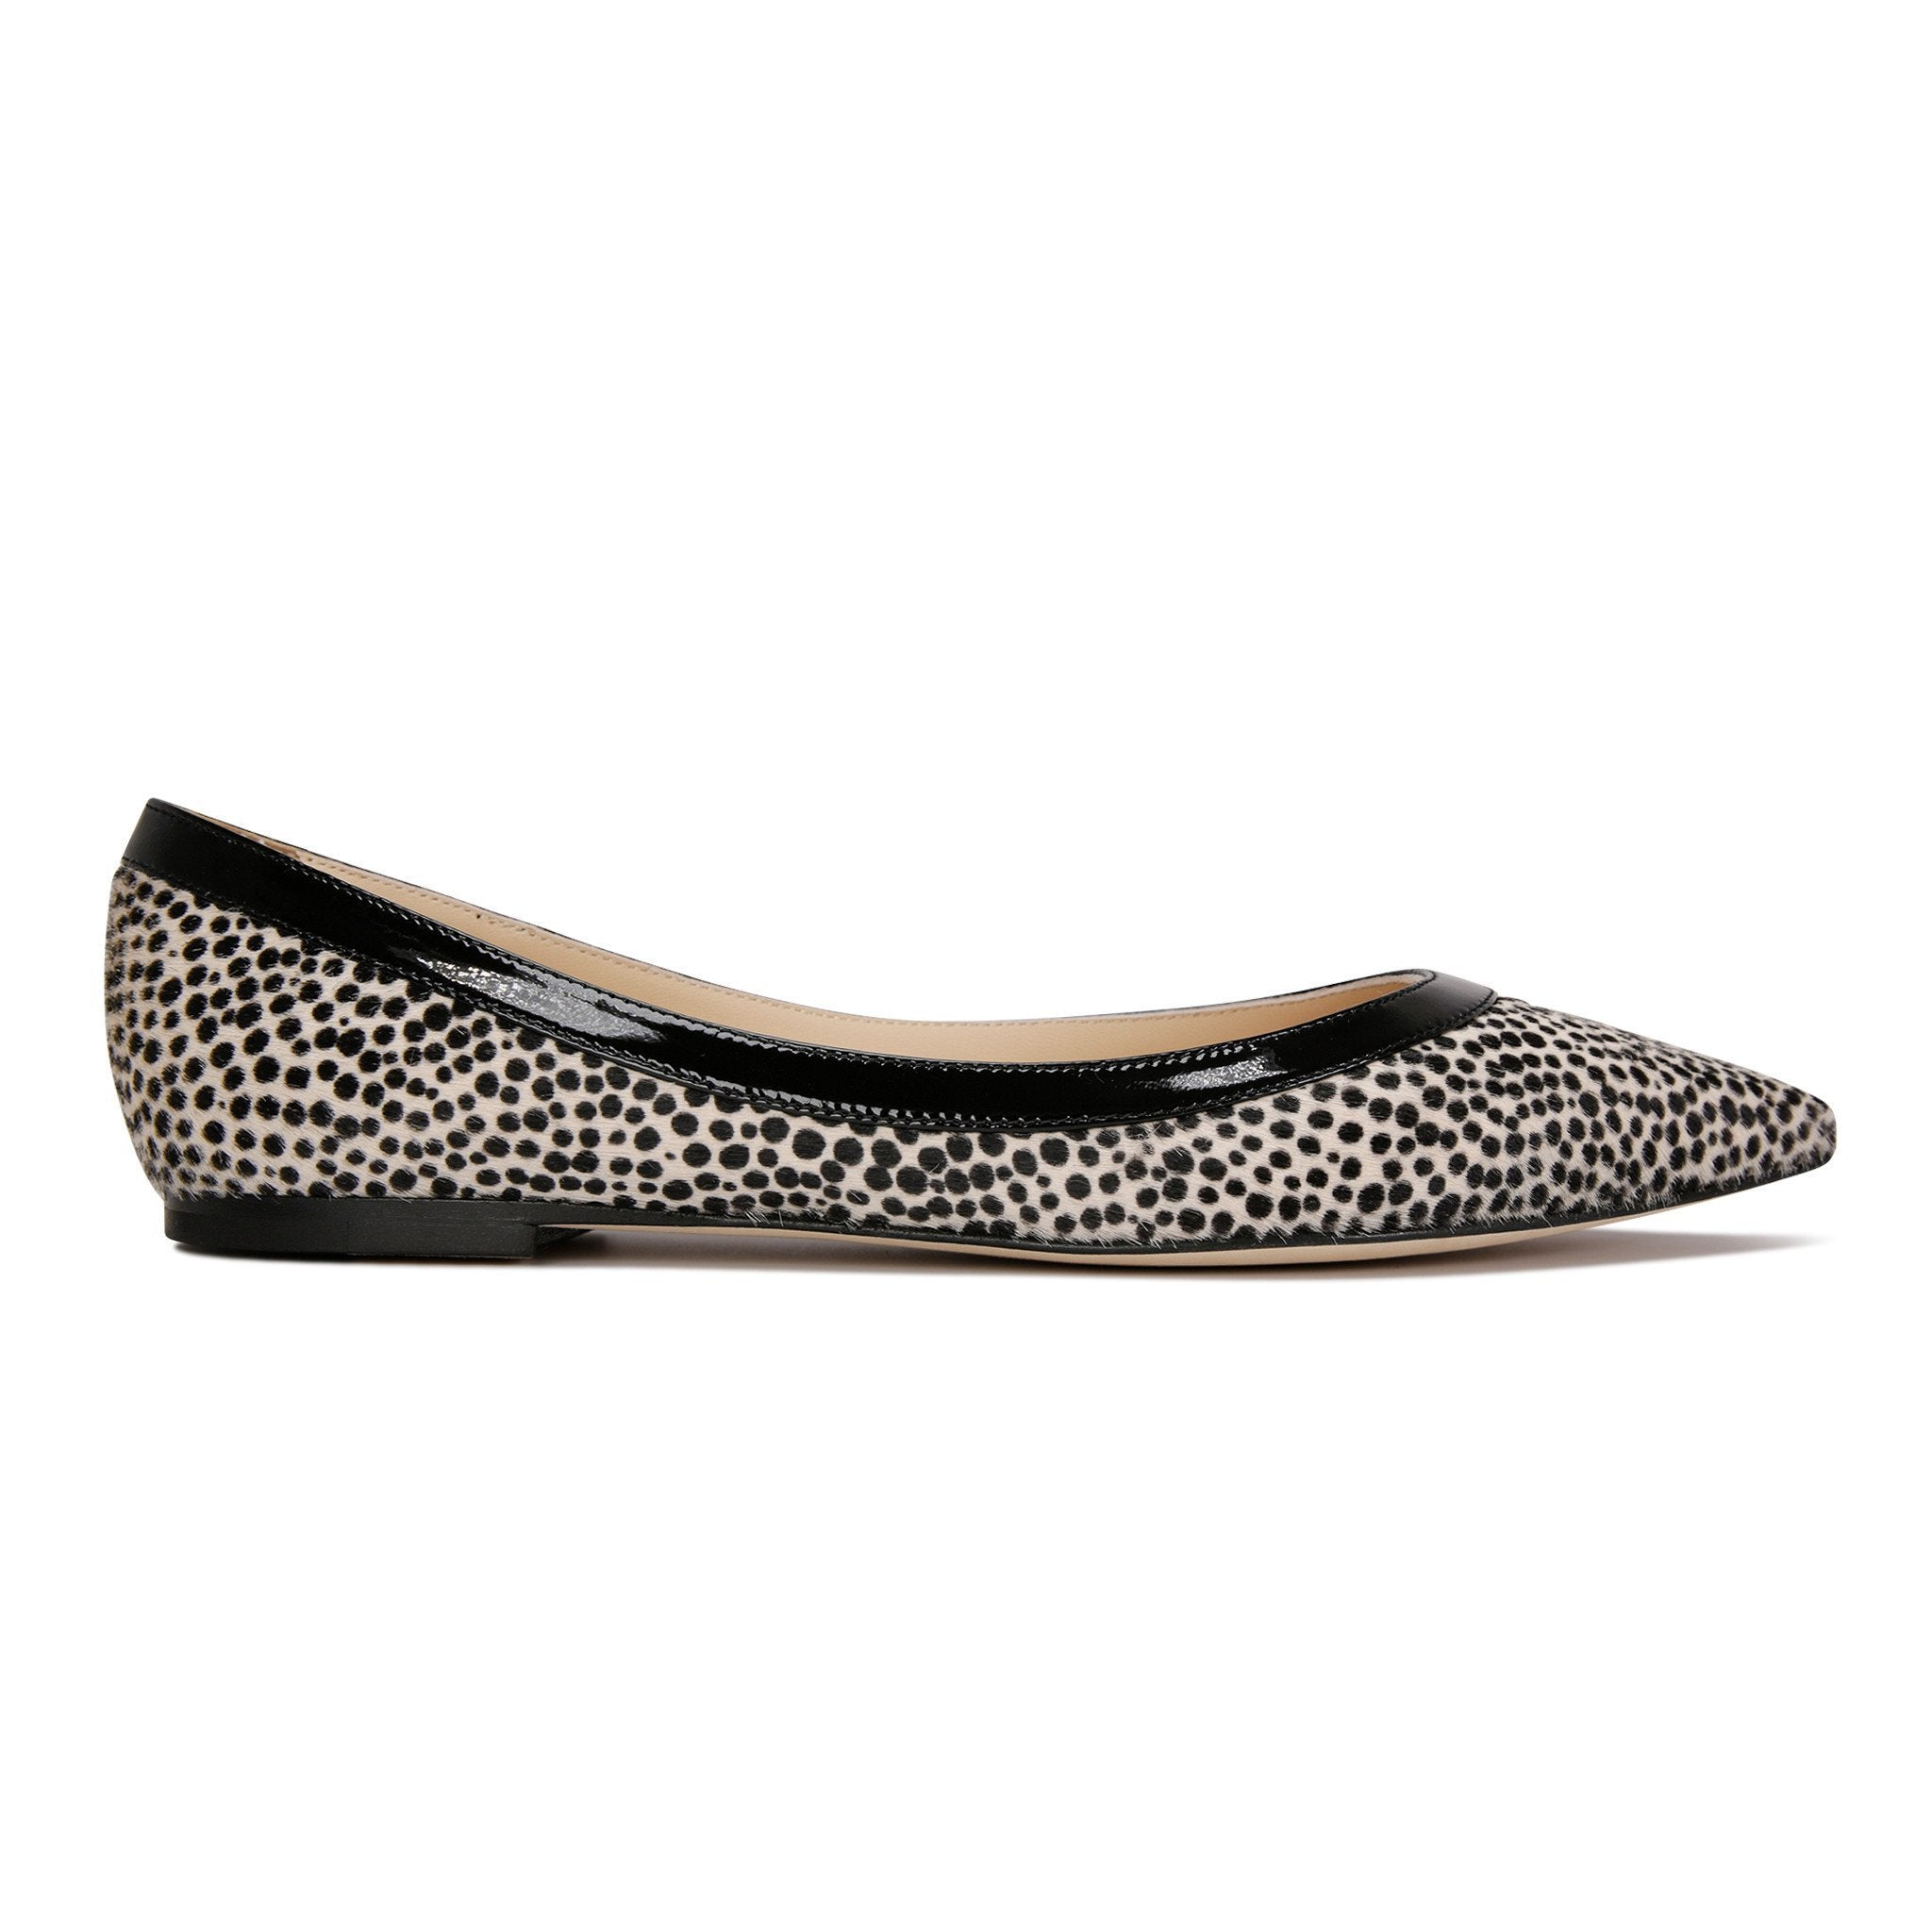 MILANO - Calf Hair Panna Cheetah + Patent Nero, VIAJIYU - Women's Hand Made Sustainable Luxury Shoes. Made in Italy. Made to Order.